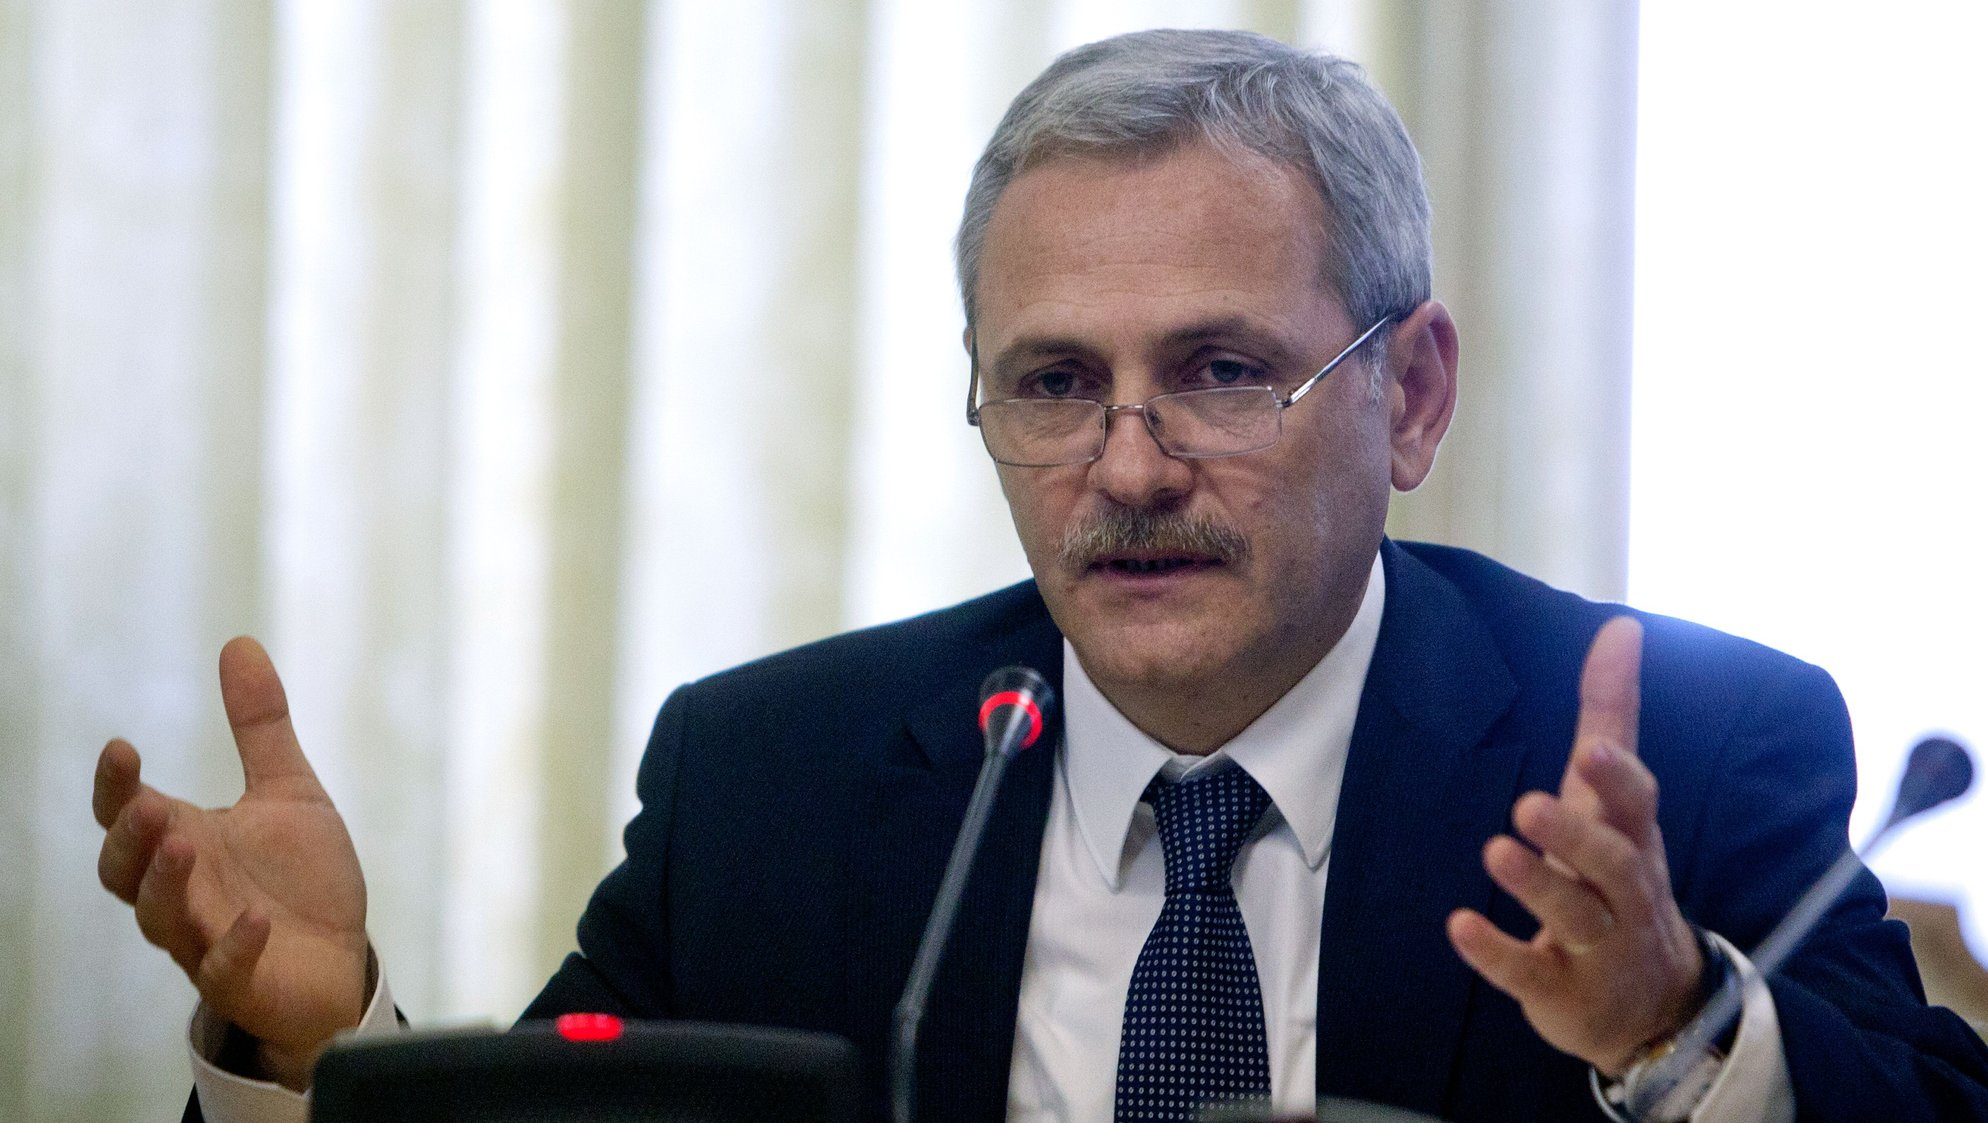 Liviu Dragnea prosecuted for instigation to abuse of office